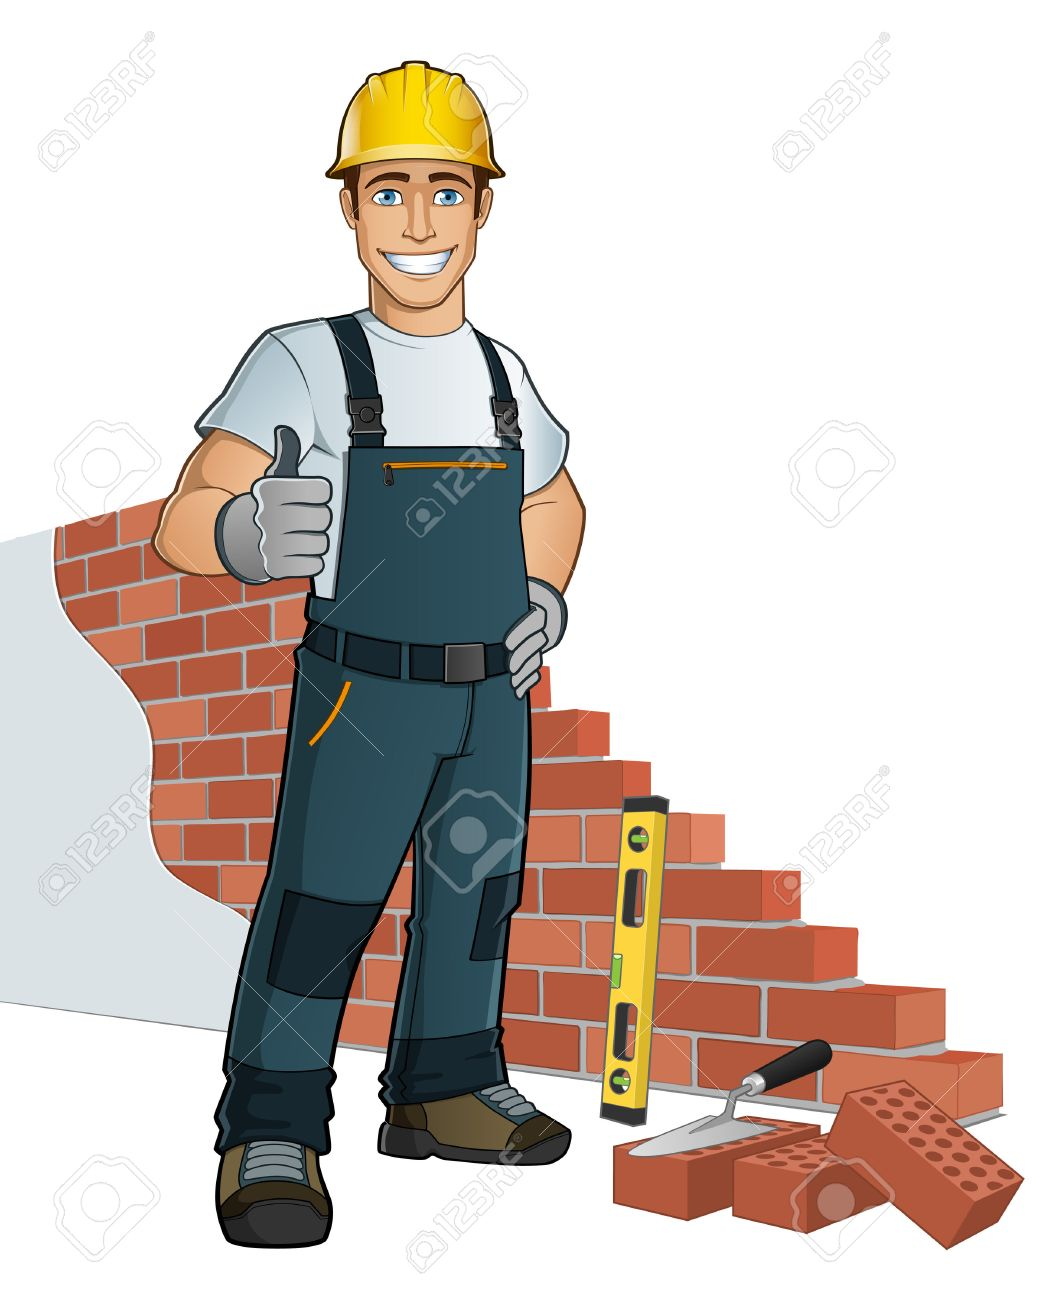 Man building wall, with diferent tools - 44058395